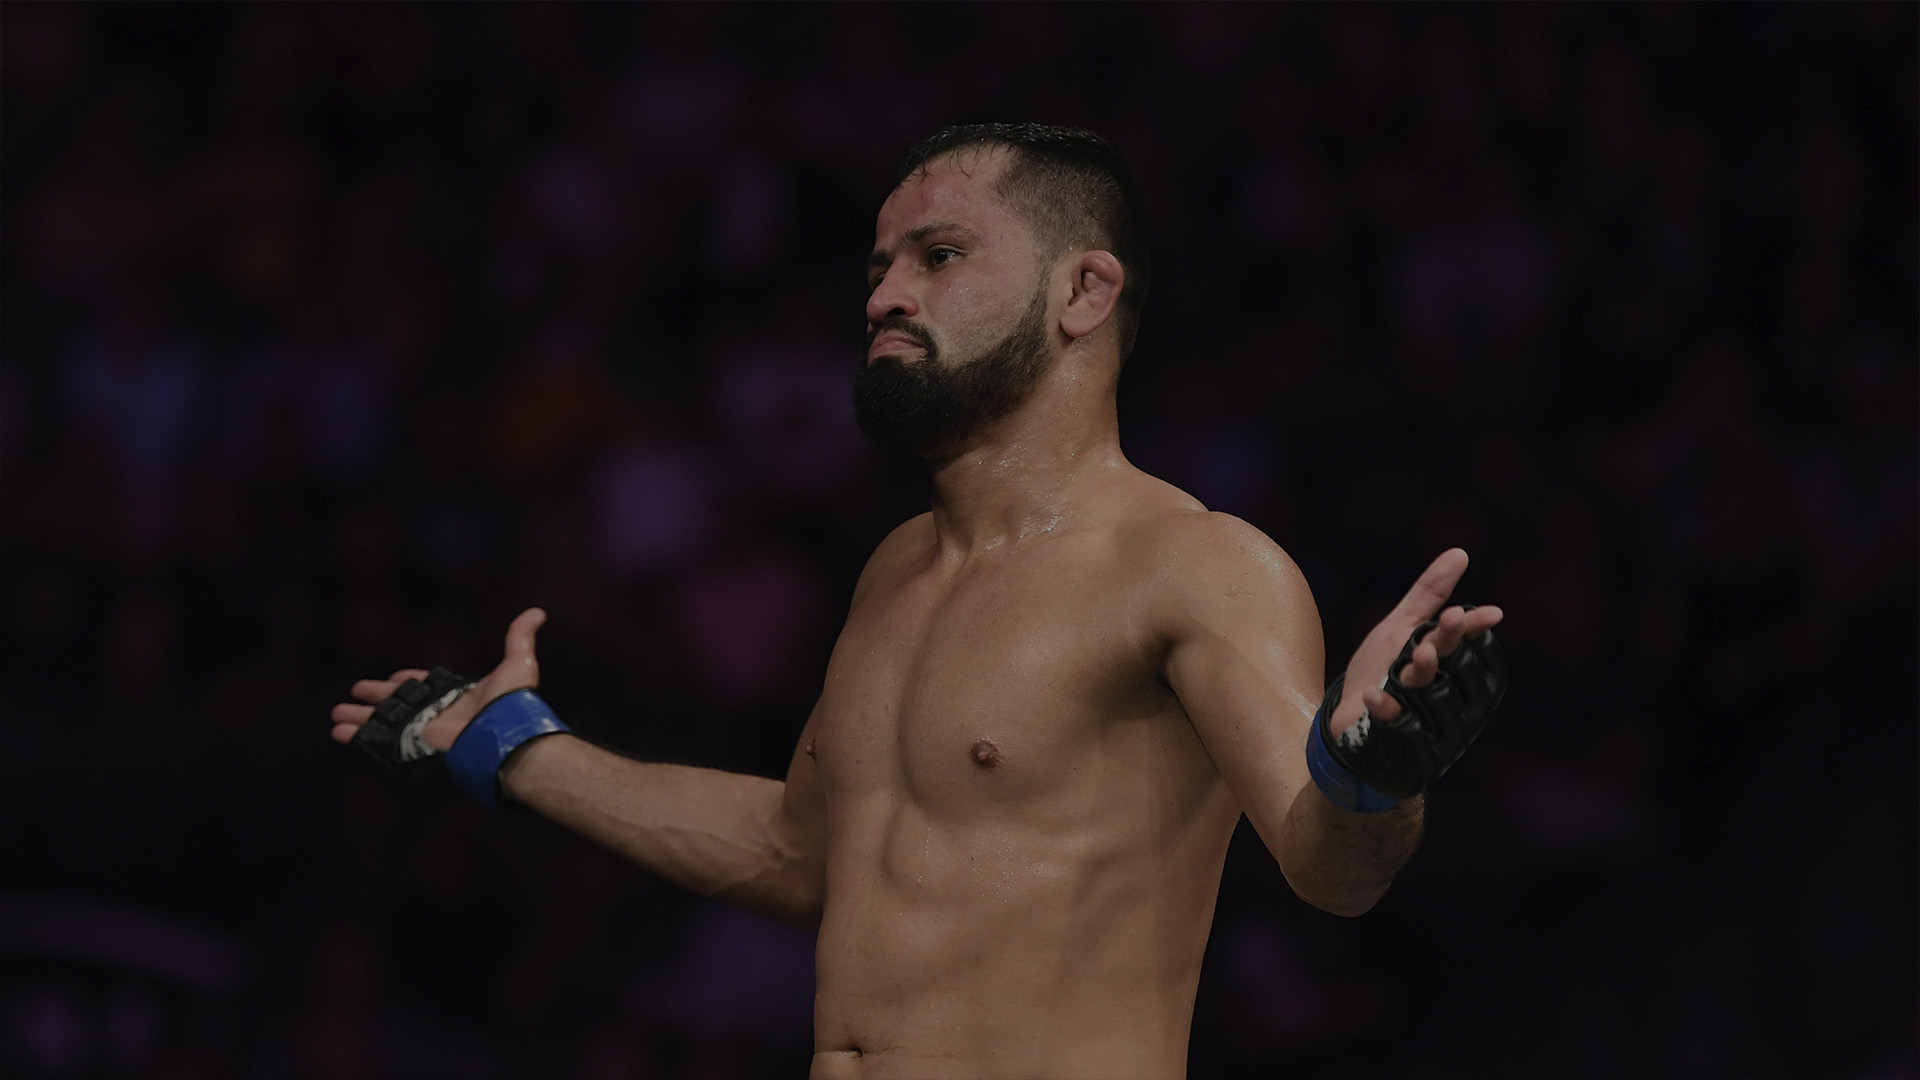 LAS VEGAS, NV - OCTOBER 06: Jussier Formiga of Brazil celebrates his win over Sergio Pettis in their flyweight bout during the UFC 229 event inside T-Mobile Arena on October 6, 2018 in Las Vegas, Nevada. (Photo by Josh Hedges/Zuffa LLC/Zuffa LLC)